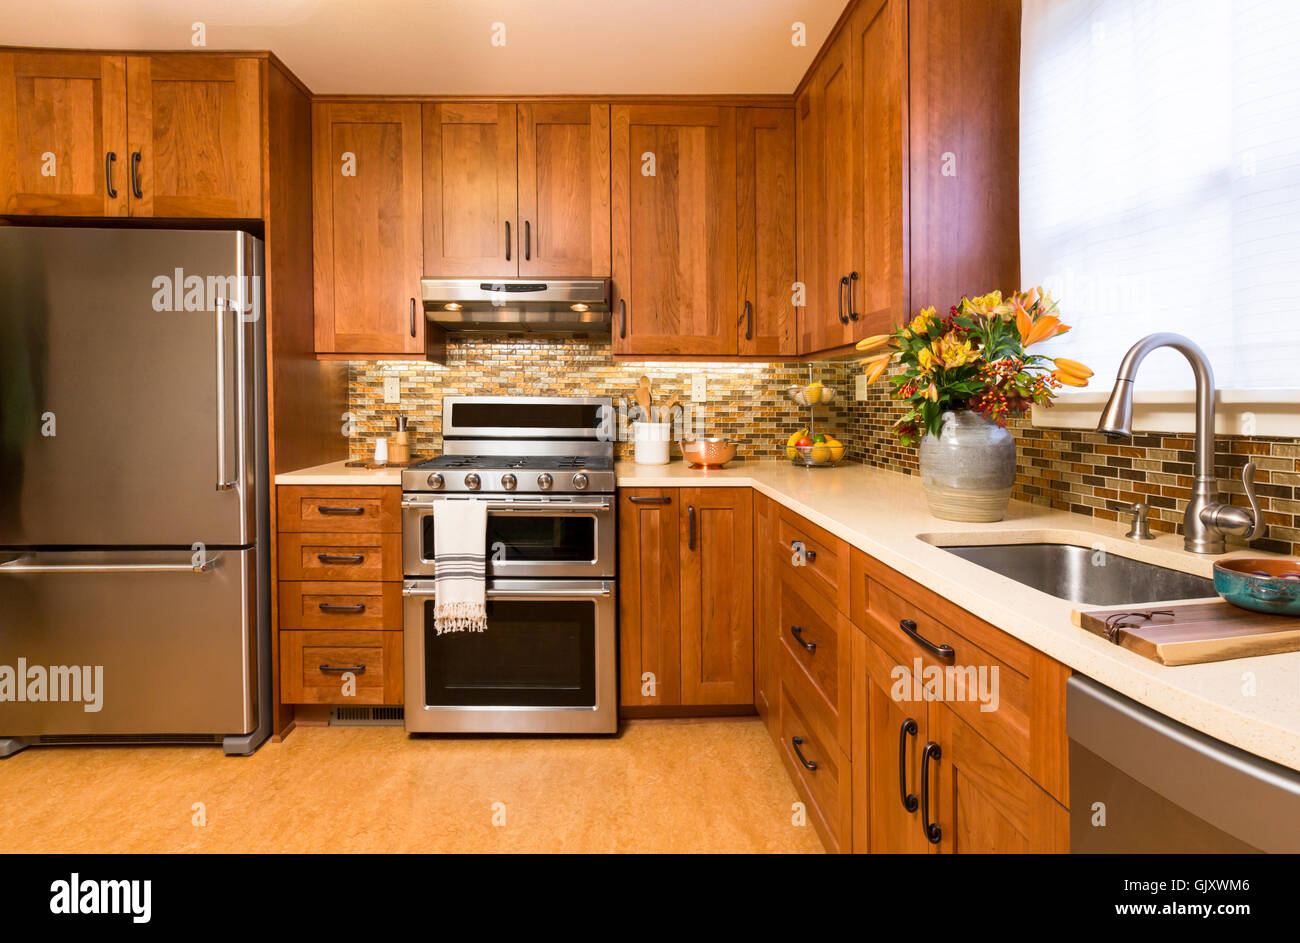 Contemporary upscale home kitchen interior with cherry wood cabinets ...